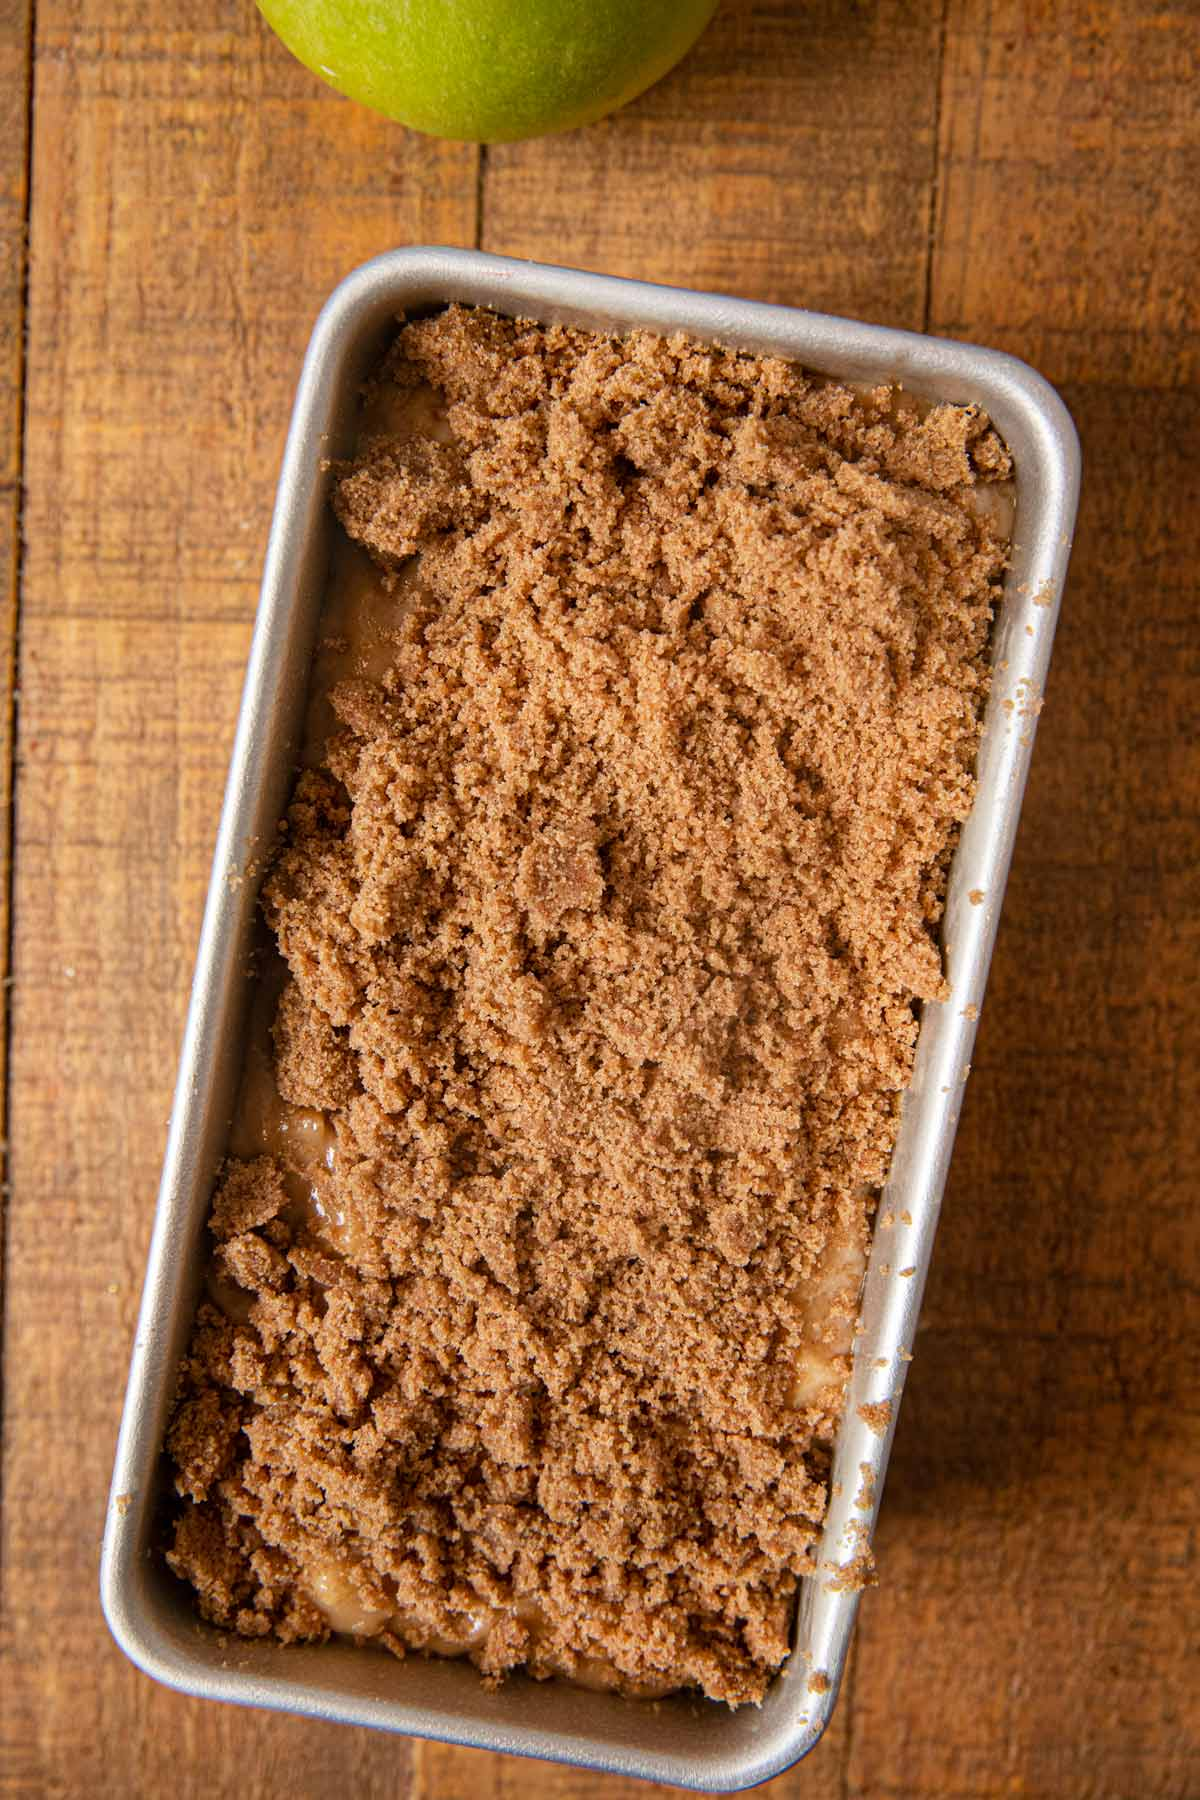 Apple Pie Bread batter and topping in baking pan before baking